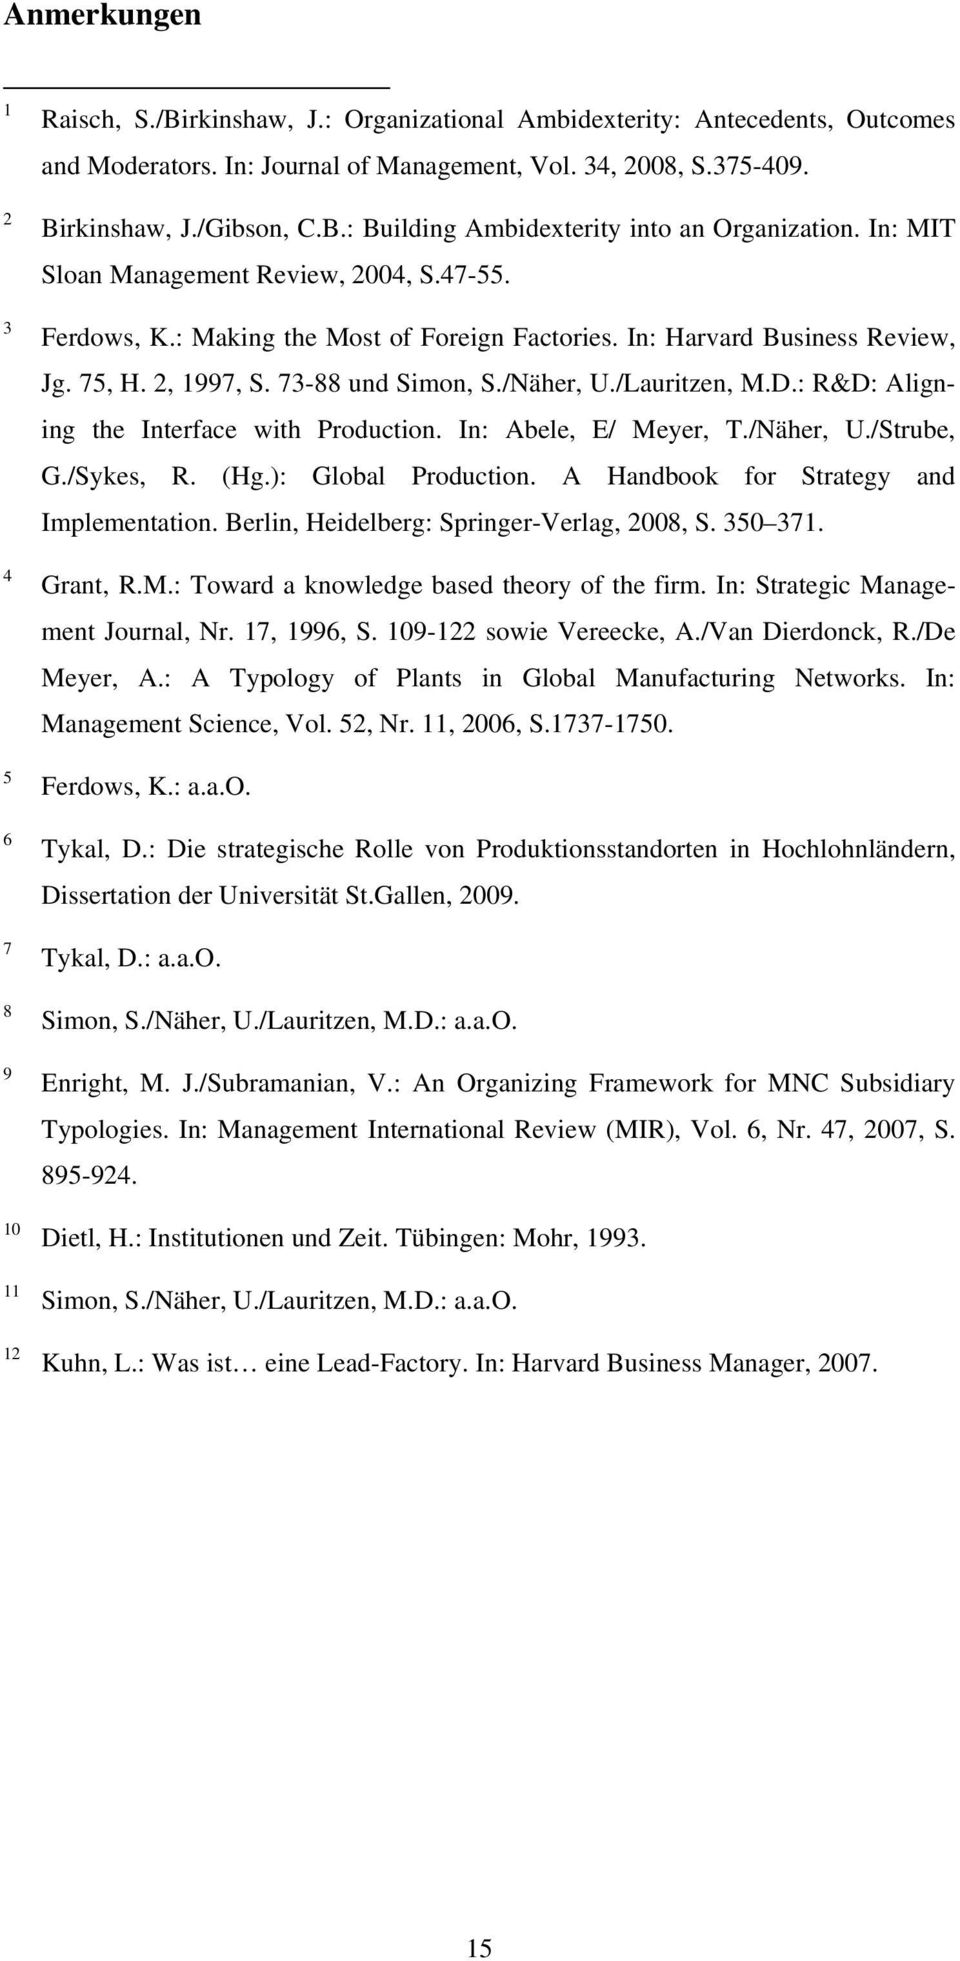 In: Harvard Business Review, Jg. 75, H. 2, 1997, S. 73-88 und Simon, S./Näher, U./Lauritzen, M.D.: R&D: Aligning the Interface with Production. In: Abele, E/ Meyer, T./Näher, U./Strube, G./Sykes, R.